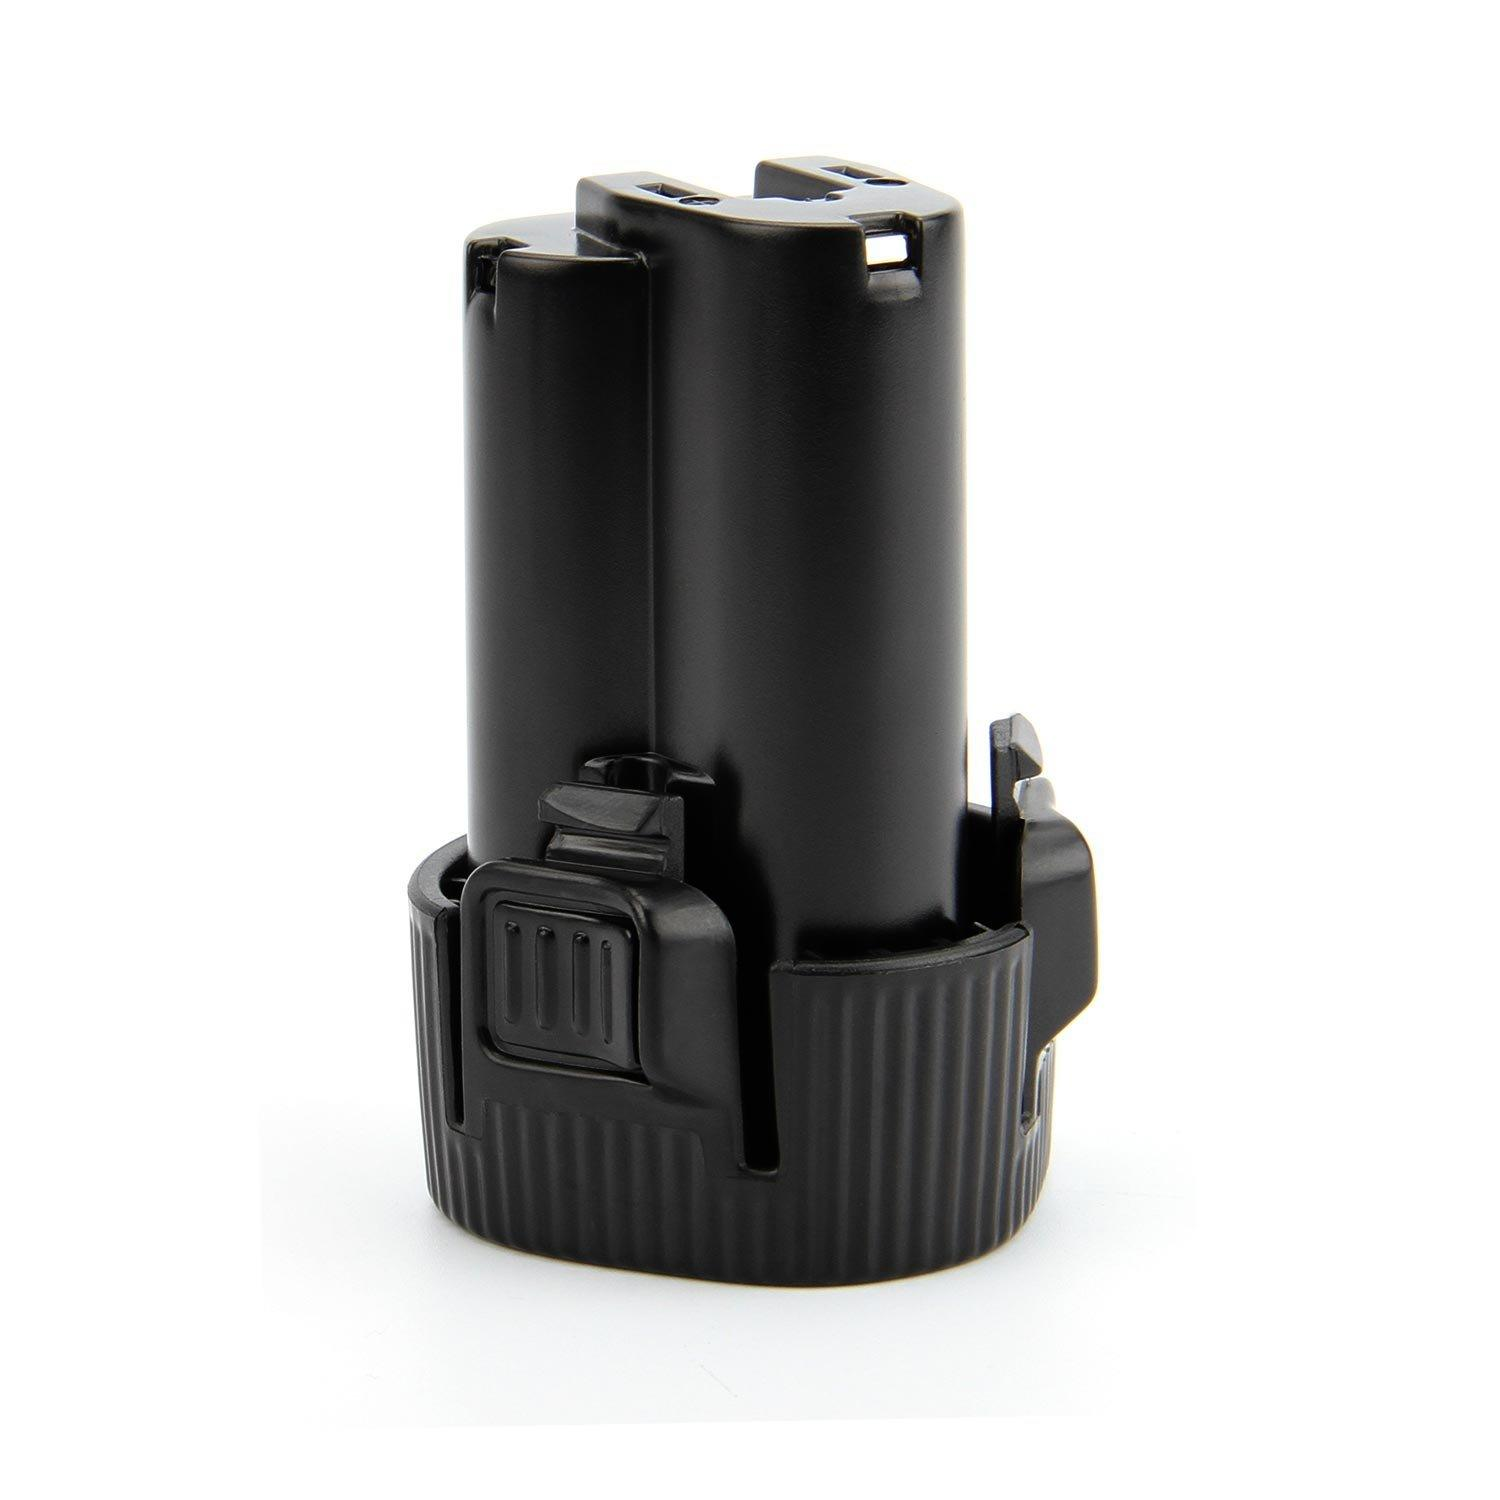 10.8V 3000mAh Replacement Li-ion Power Tool Battery For Makita BL1013 BL1014 LCT203W 194550-6 194551-4 195332-9